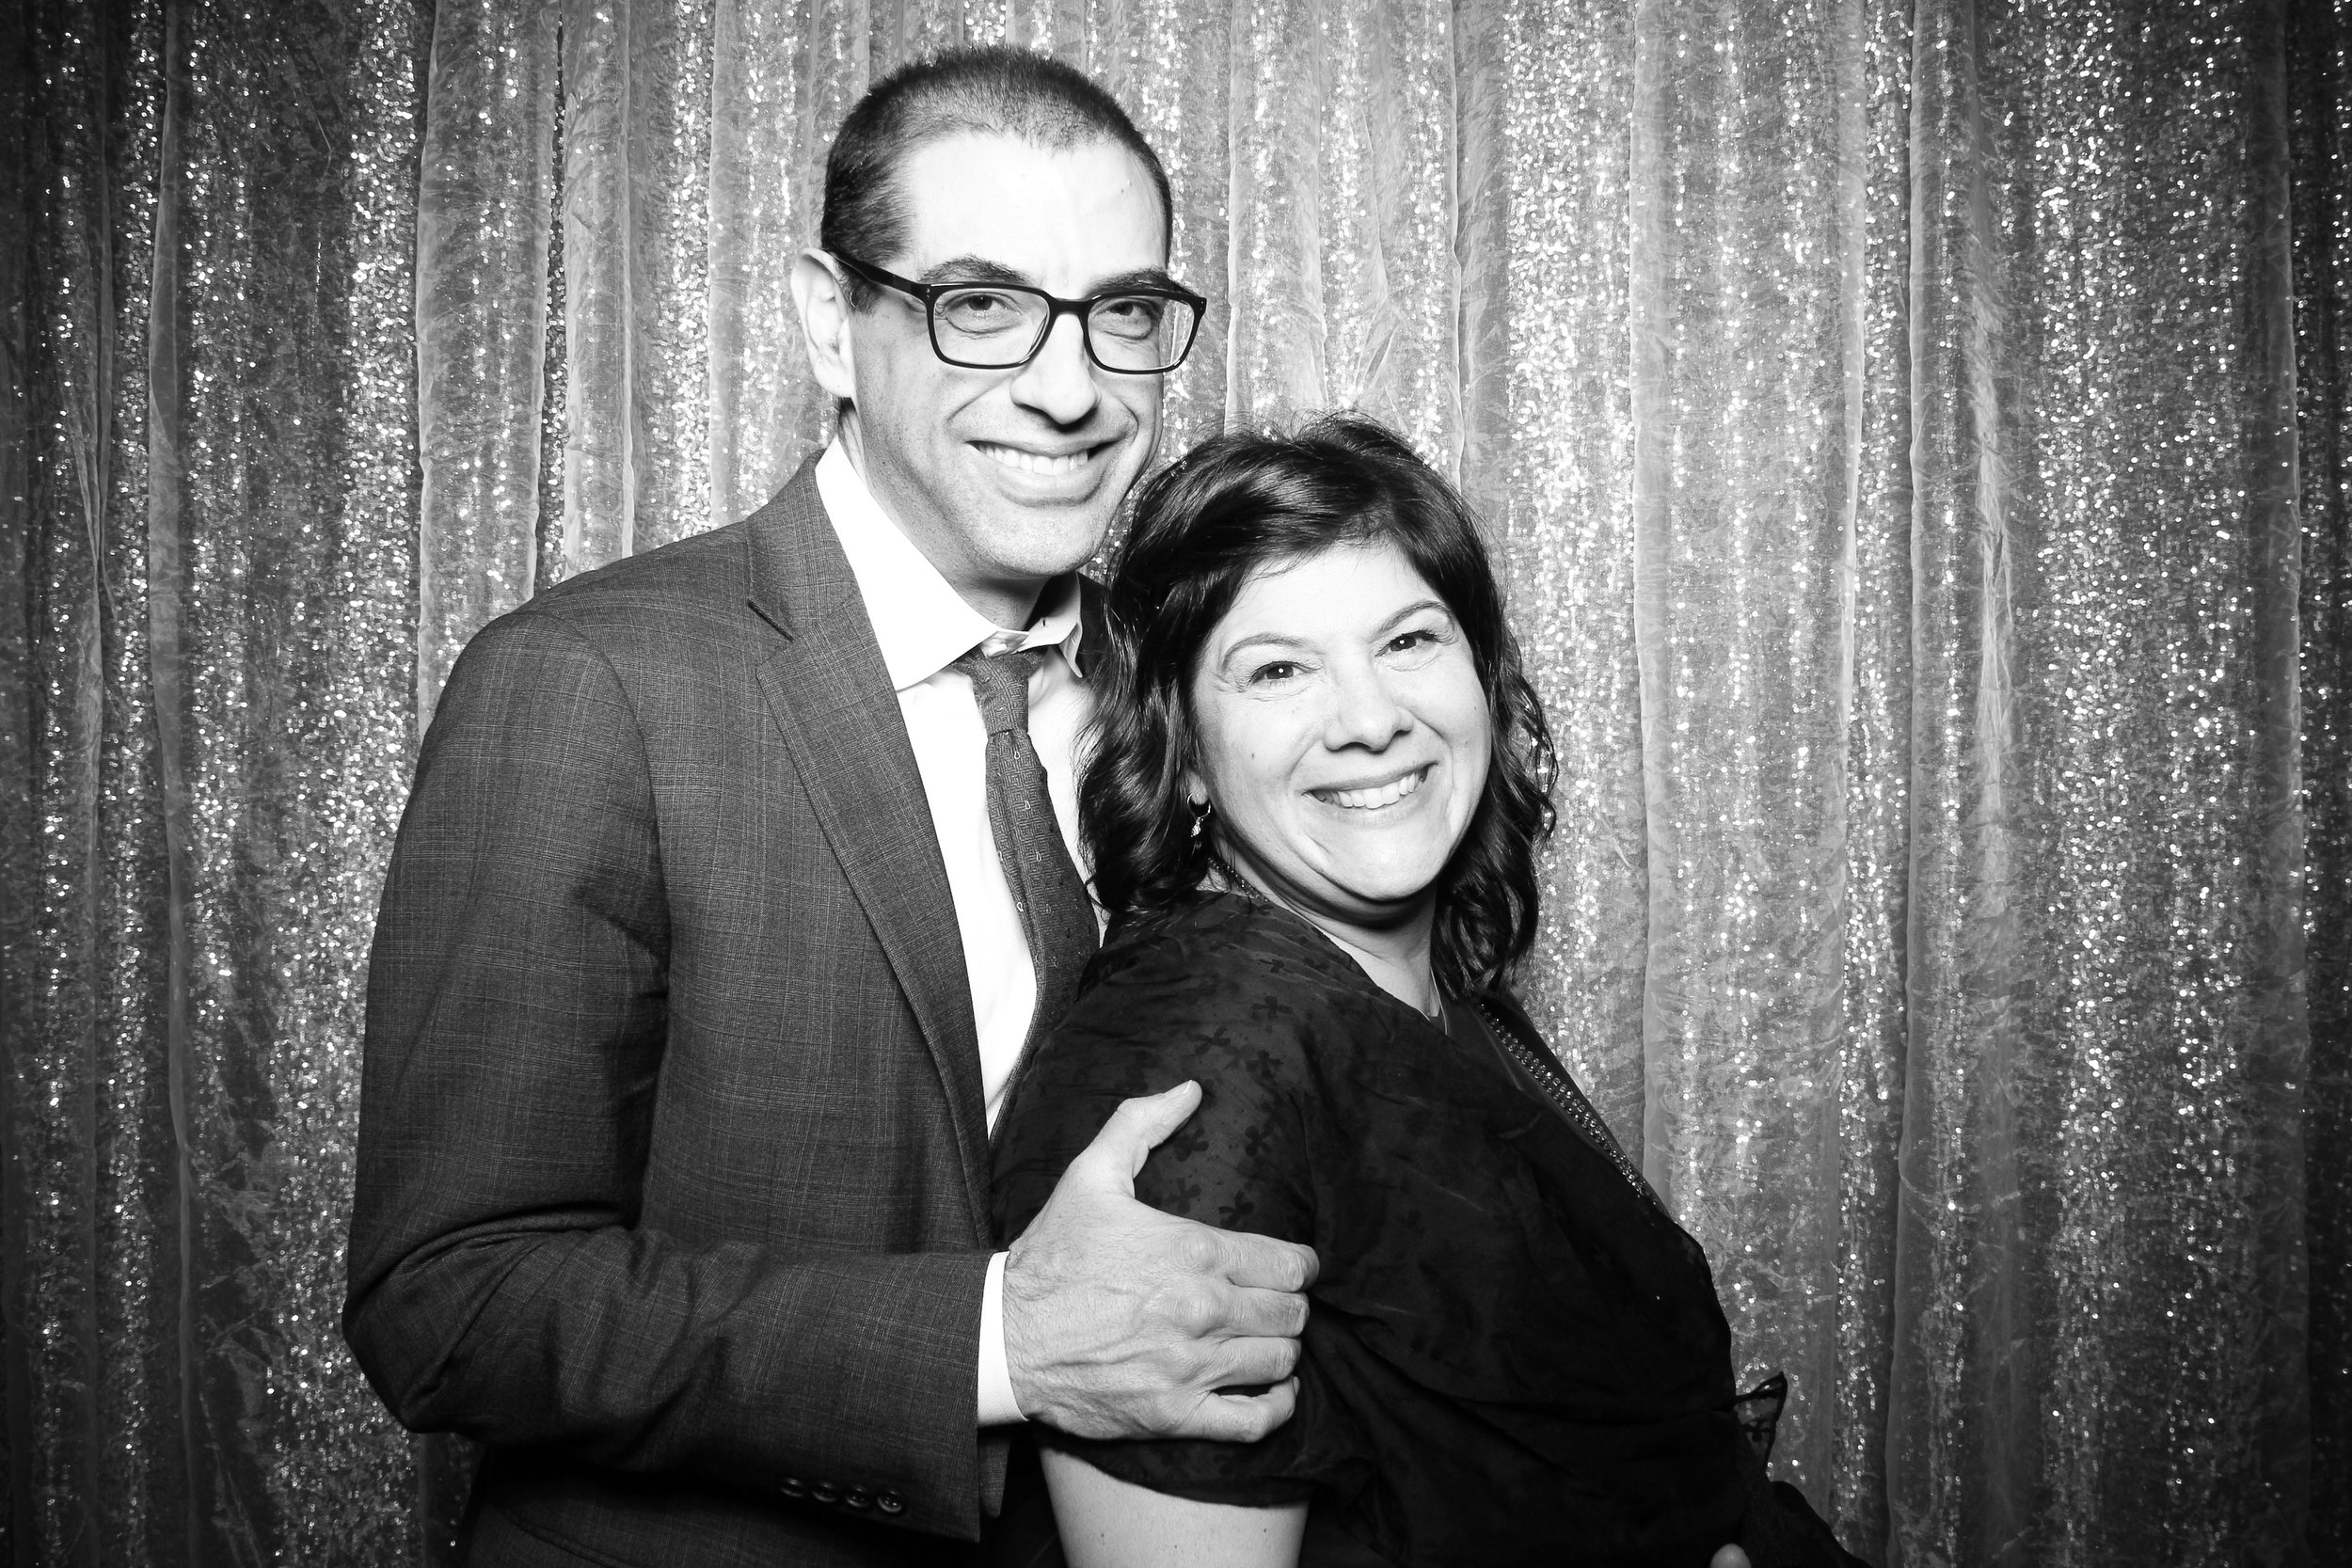 Chicago_Vintage_Photobooth_Montgomery_Club_Holiday_Party_09.jpg